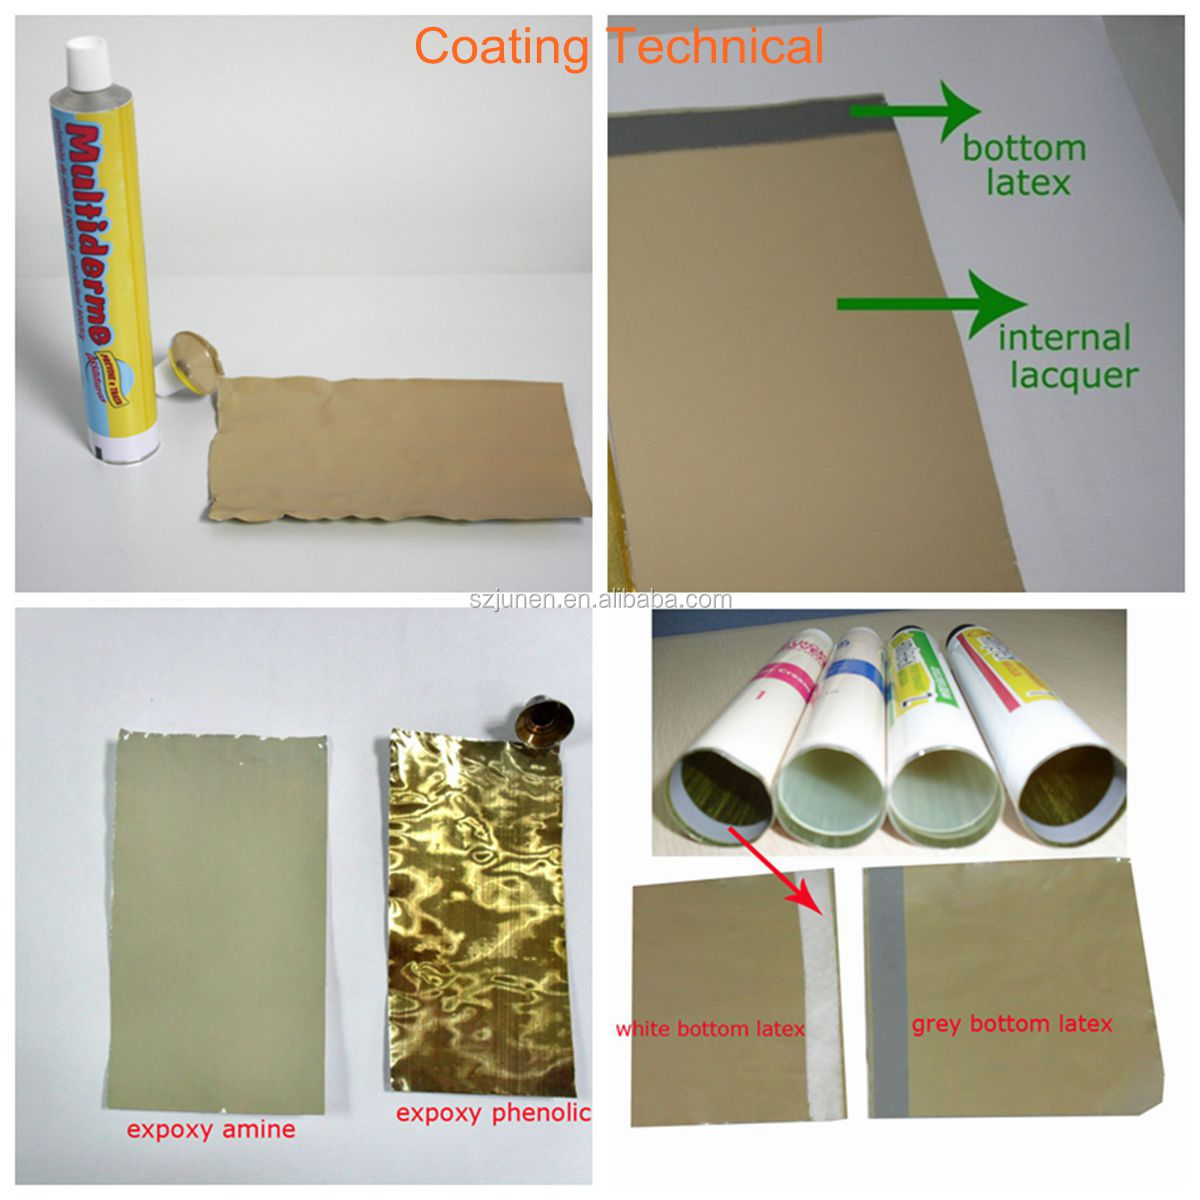 Coating Technical text.jpg